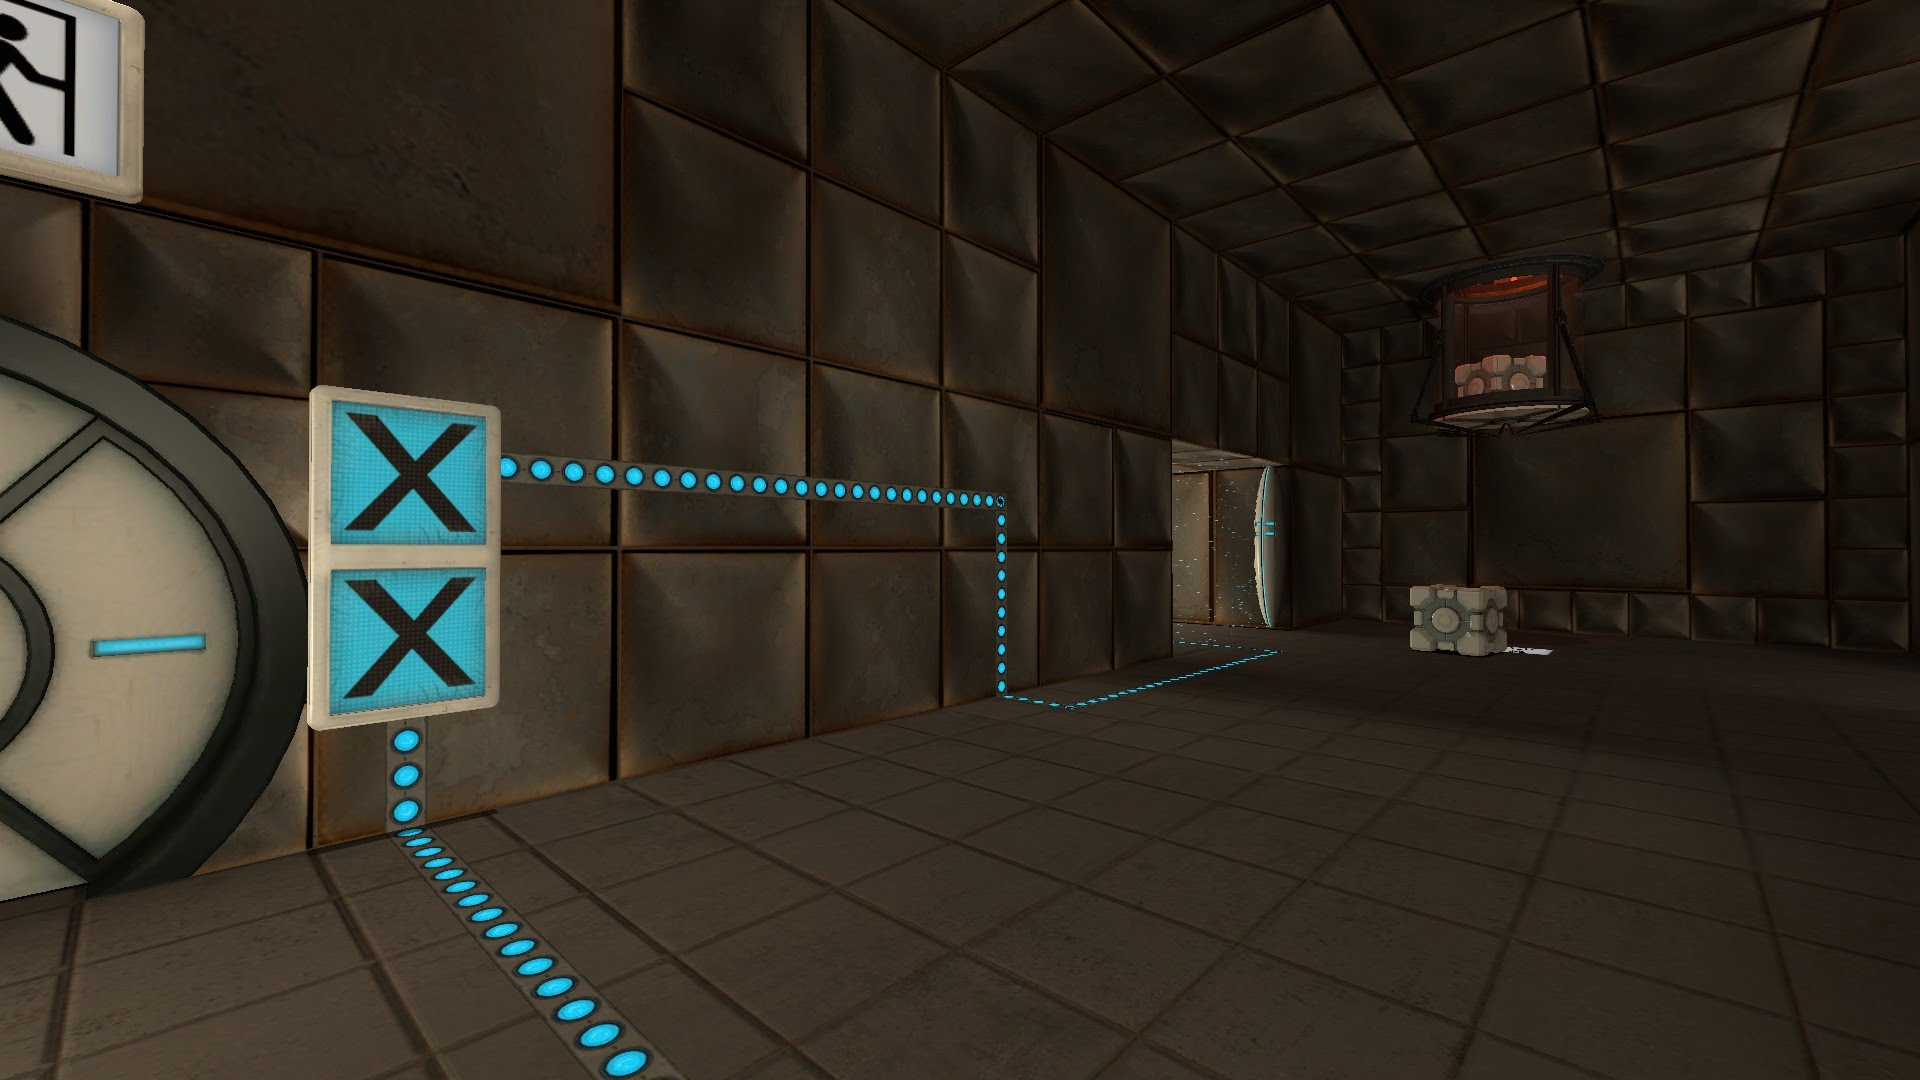 In the first room, indicator lights go from the exit door, past a cube dropper, and through an emancipation grid.